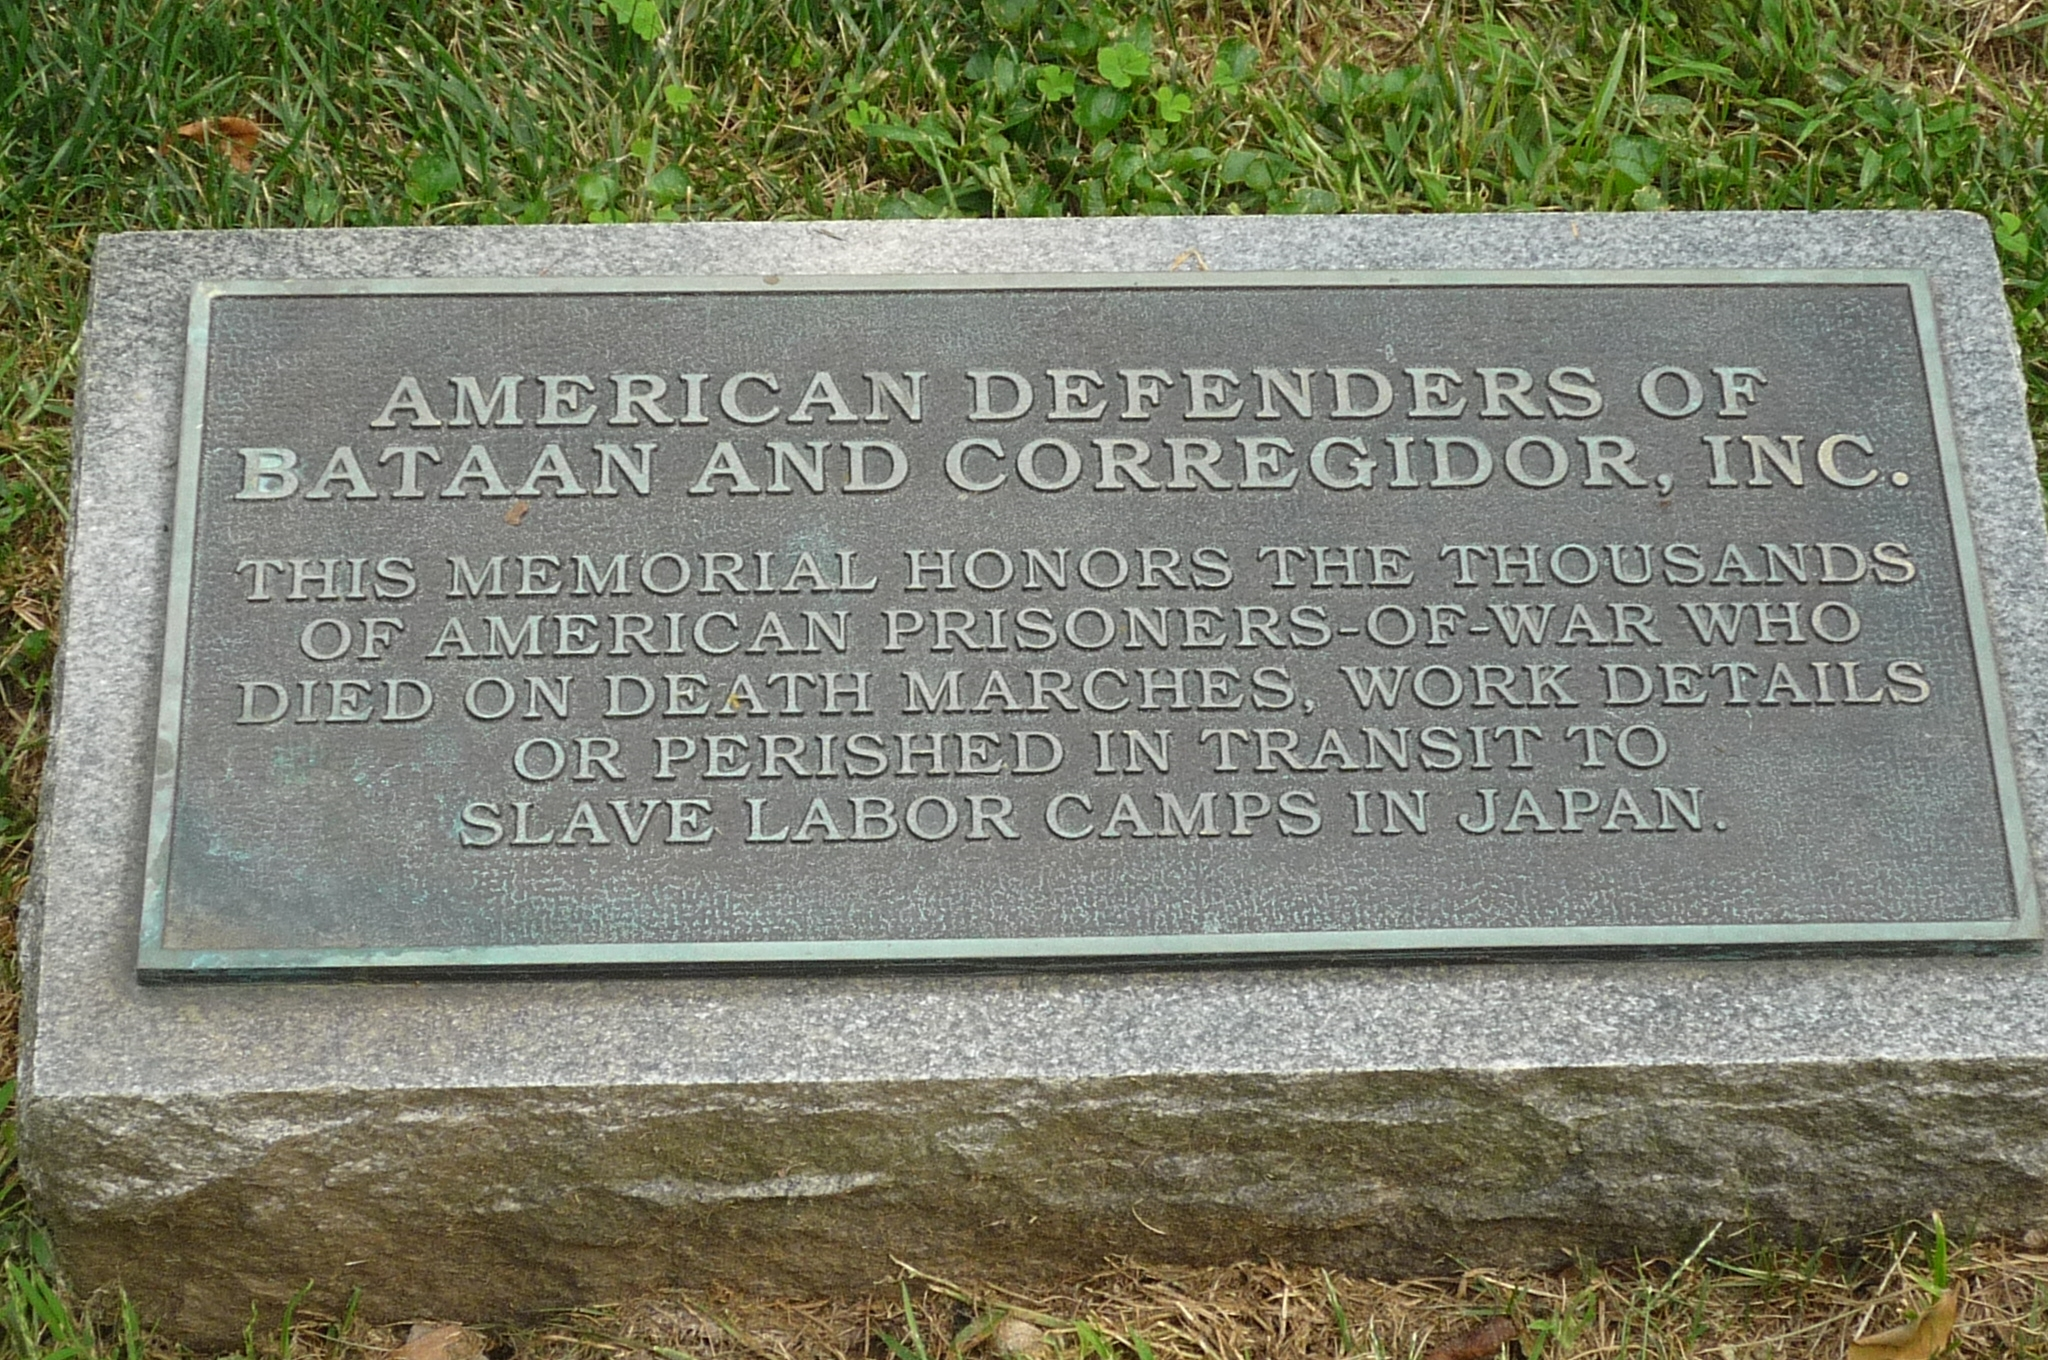 American Defenders of Bataan and Corregidor, Inc. Marker